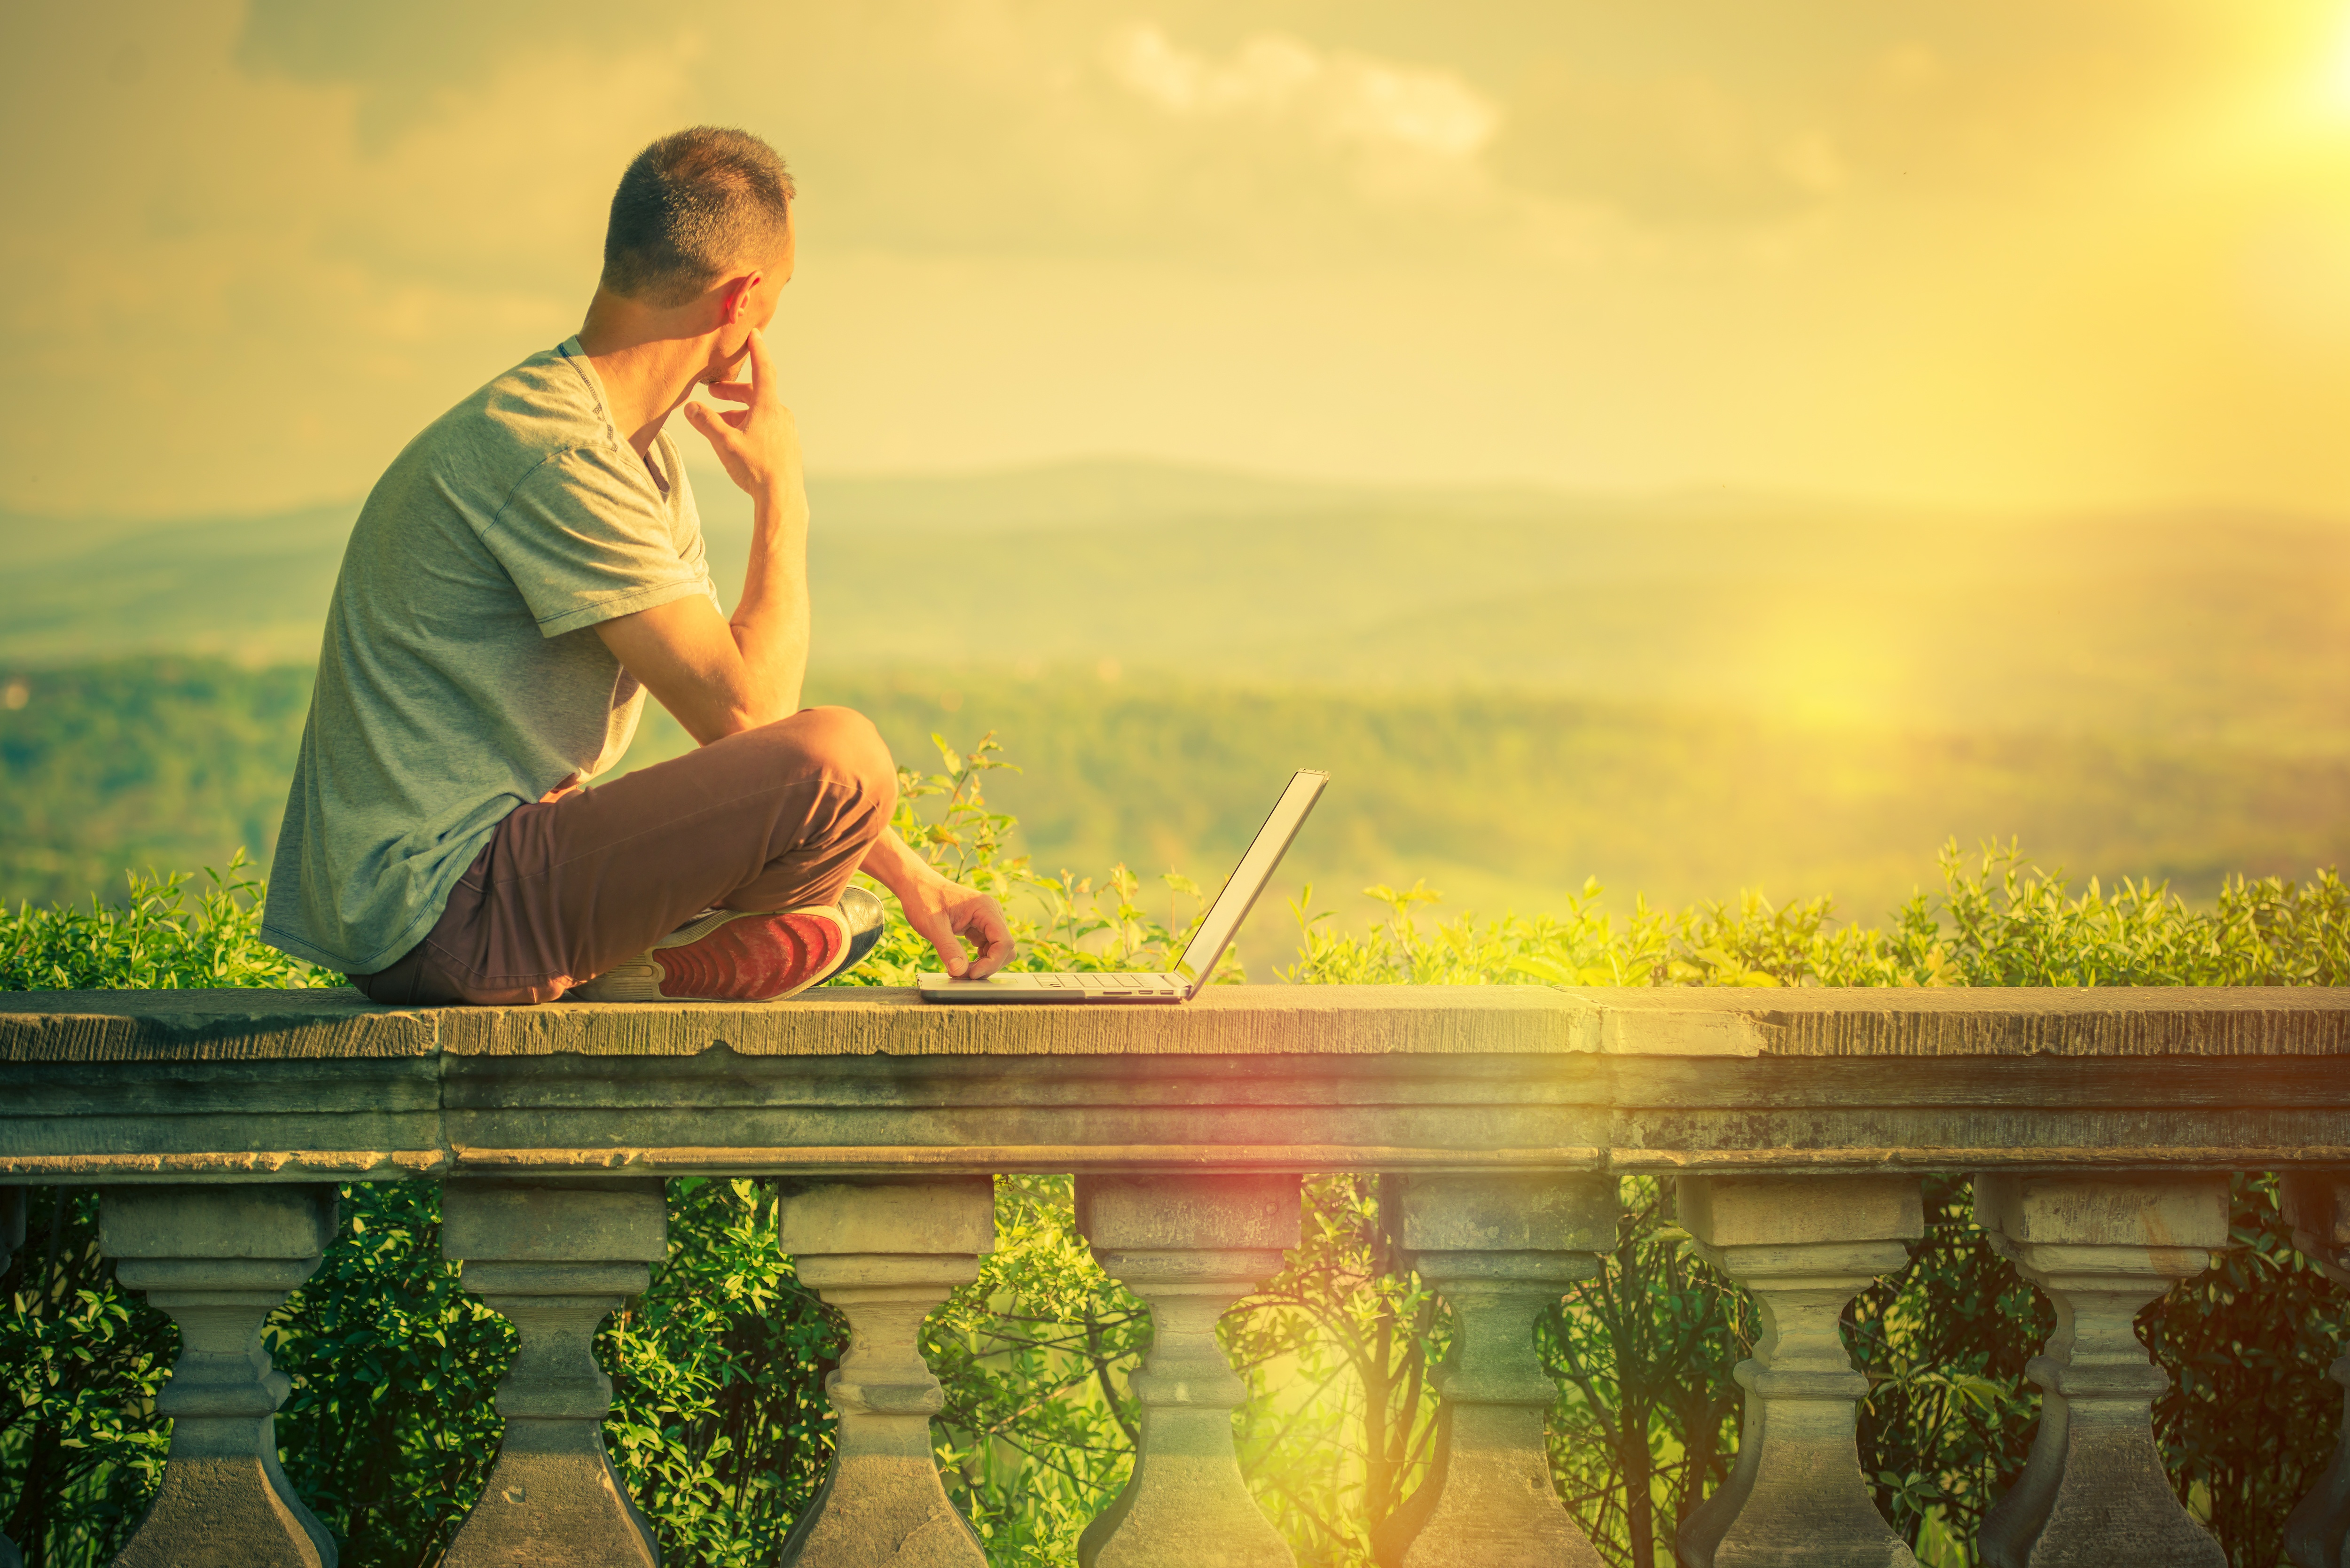 Creative Outdoor Works. Creative Entrepreneur with Laptop Working at His Favorite Outdoor Place with Scenic Panoramic View.